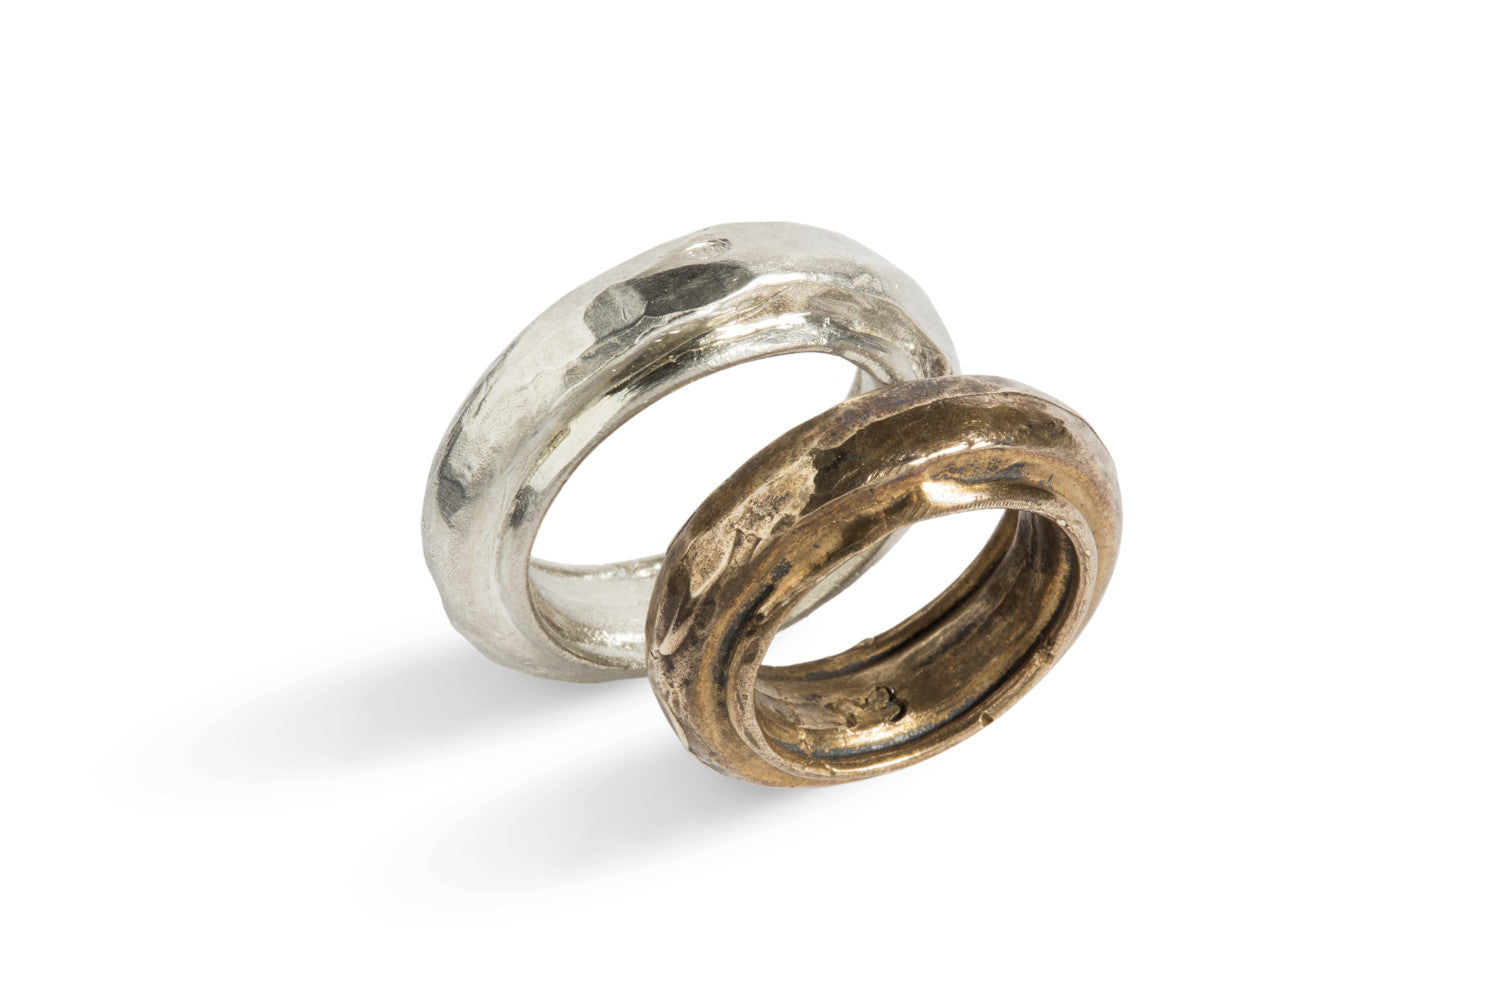 Fedone Ring In Silver or Bronze by Simone Vera Bath - Art Jewellery Store: Song of Jewellery